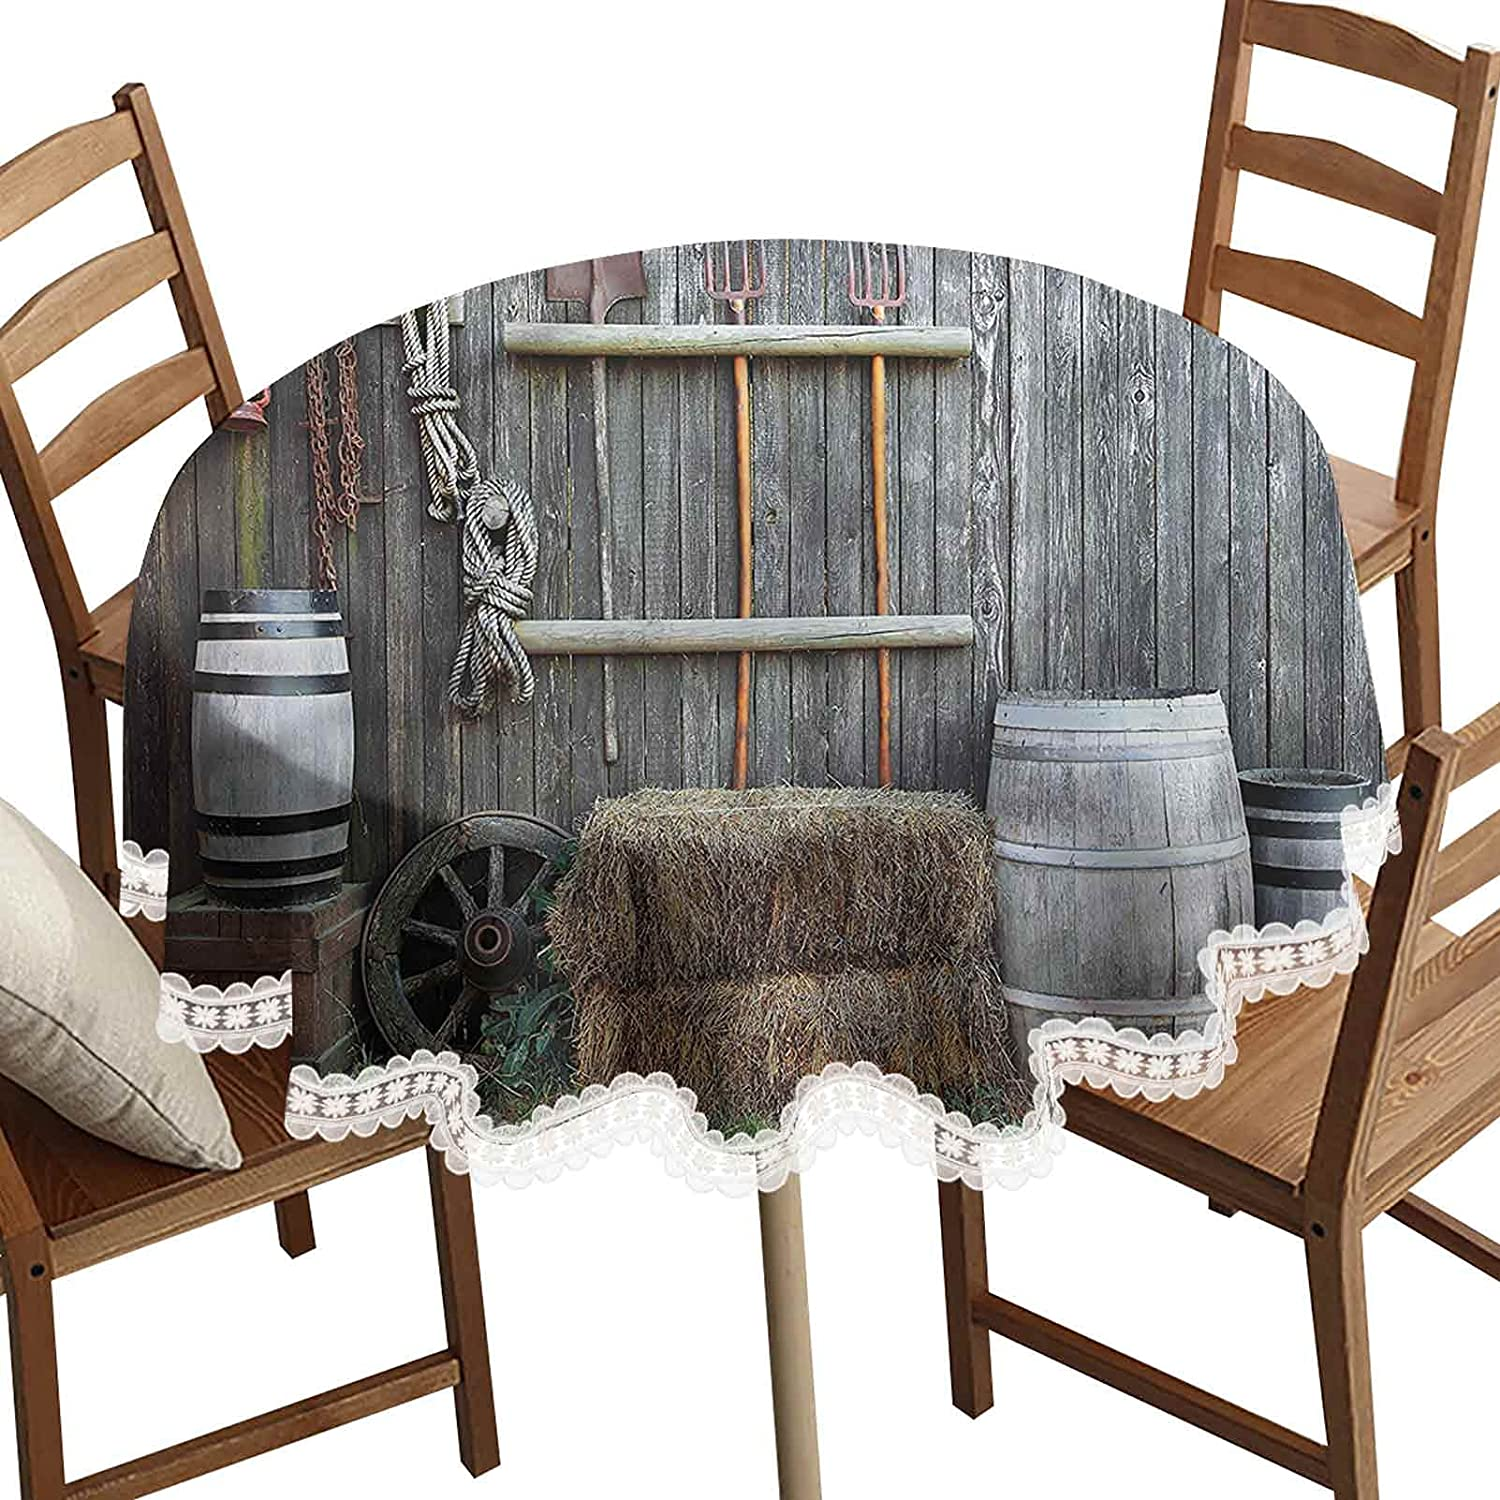 SoSung Agriculture Decorative Round Table Western Boston Mall Cloth B Los Angeles Mall Wooden